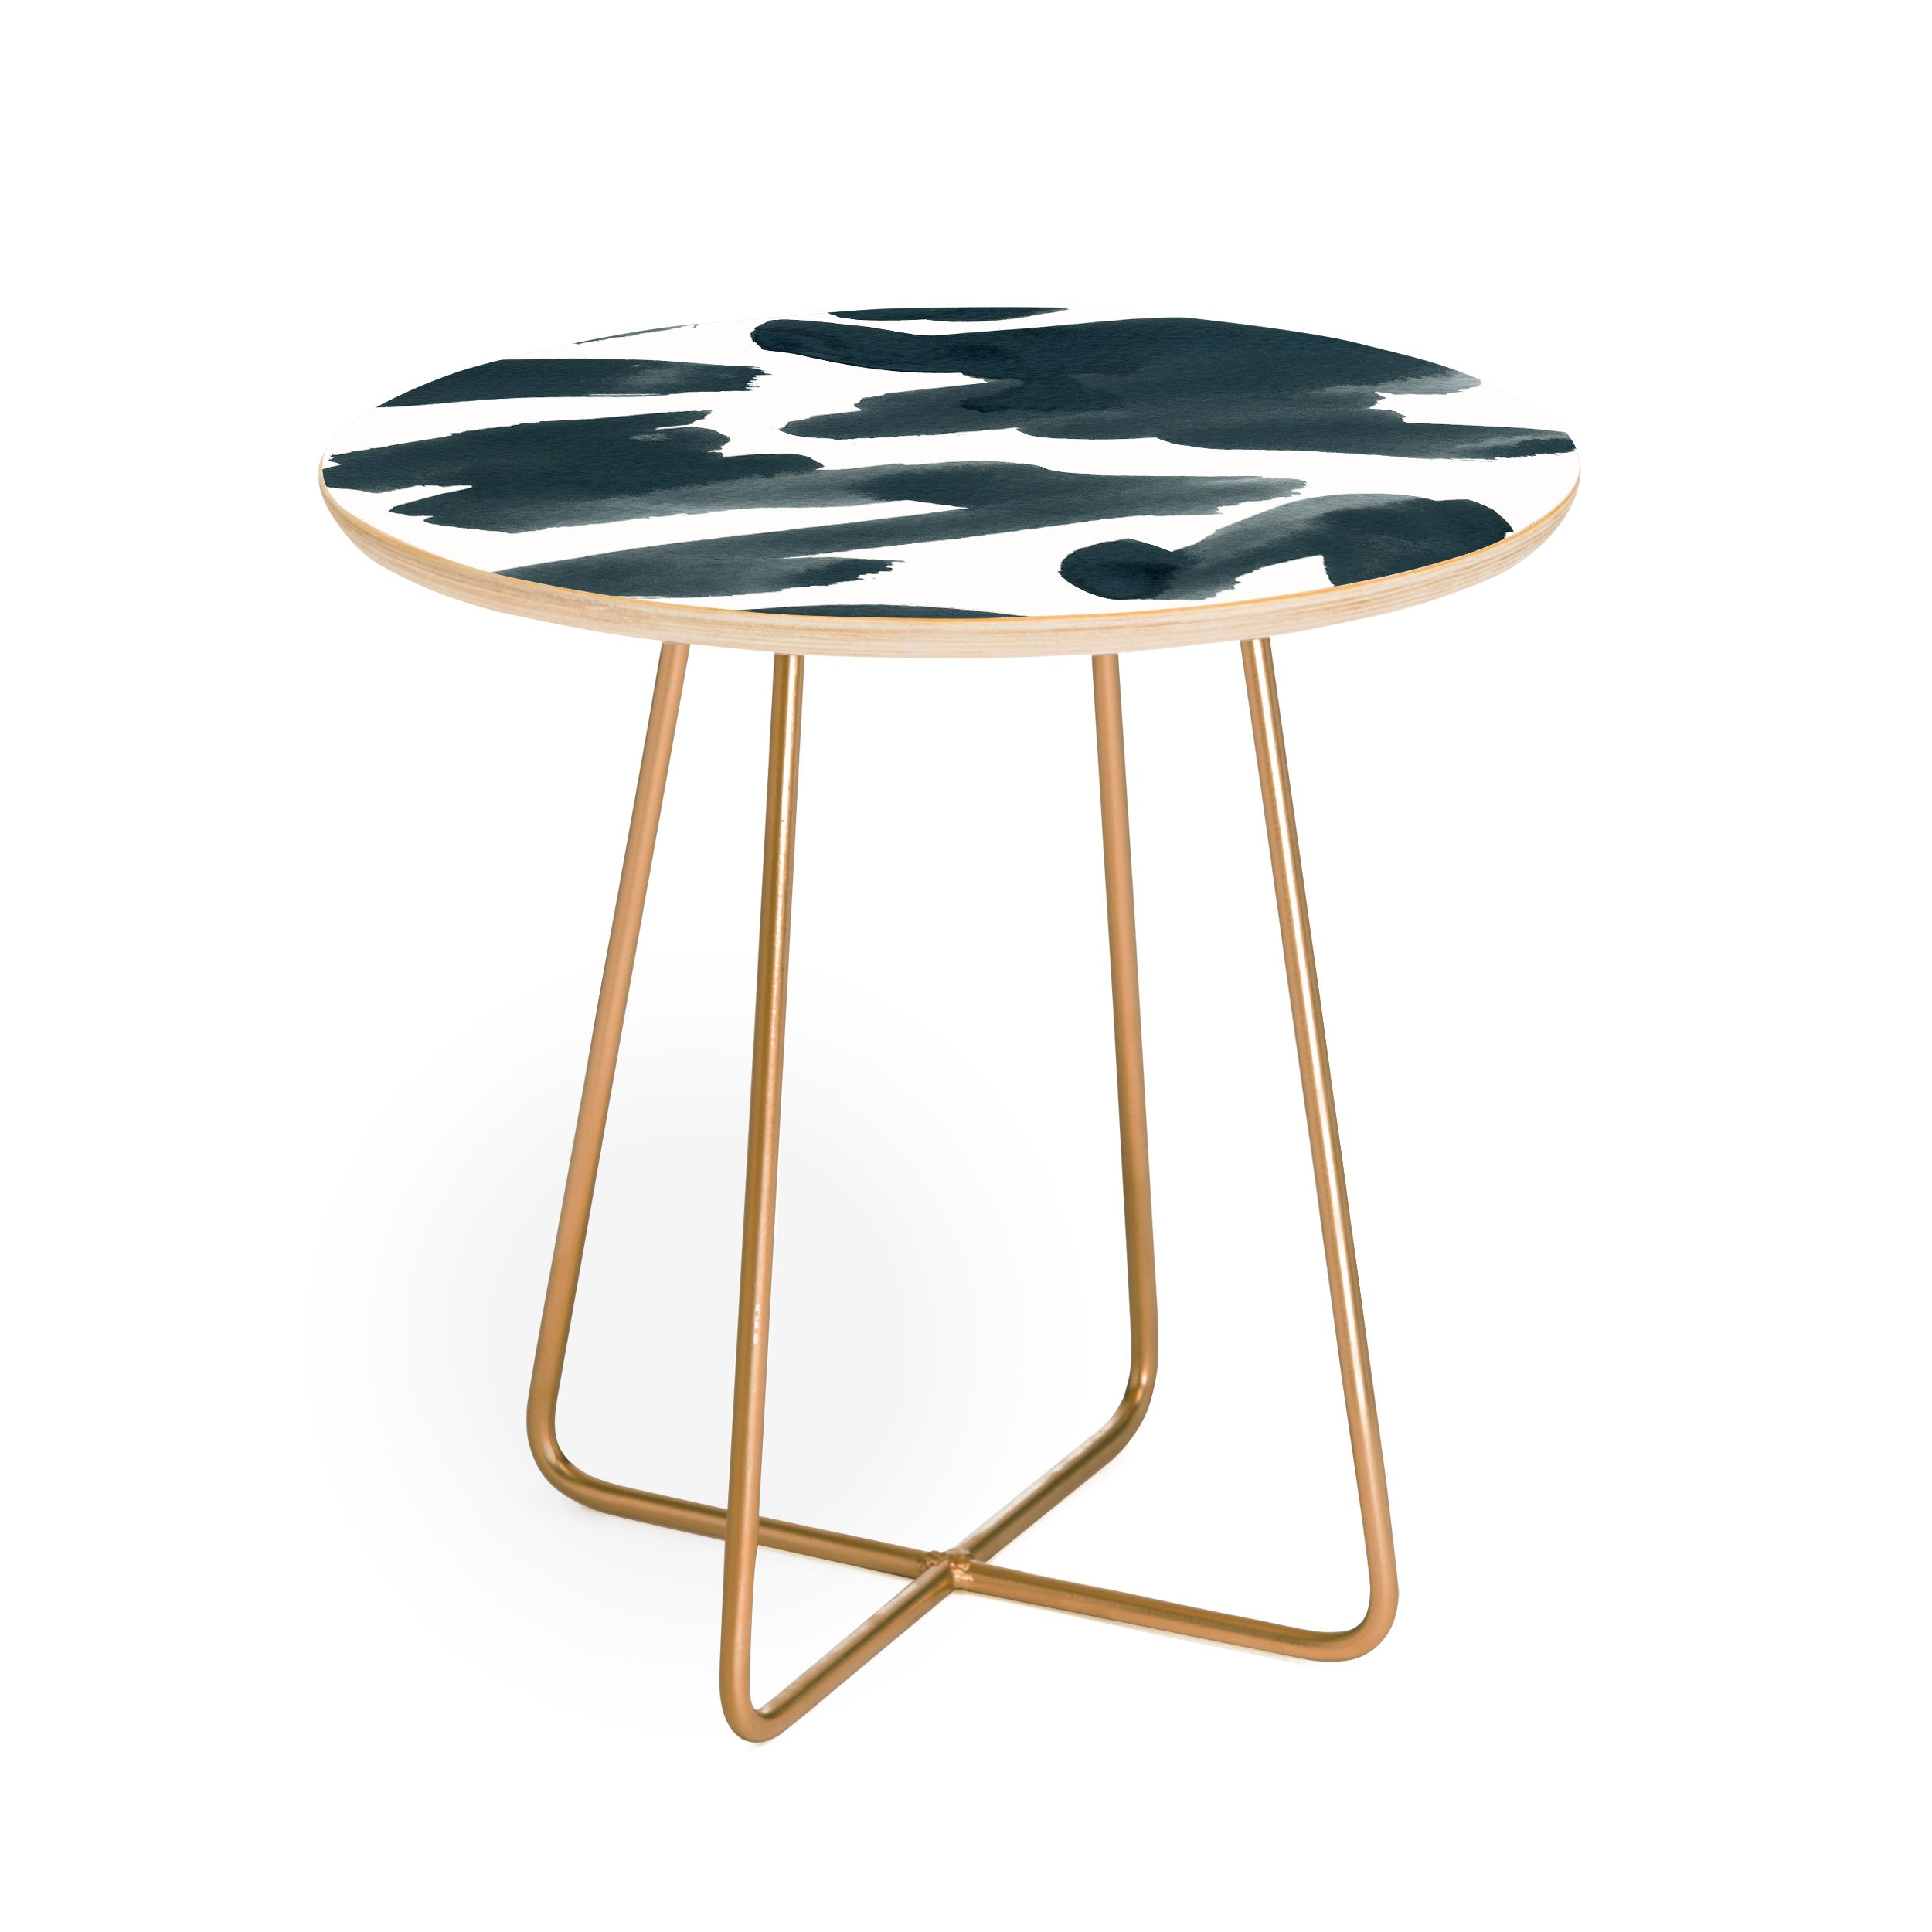 Elena Blanco Bits of night Round Side Table